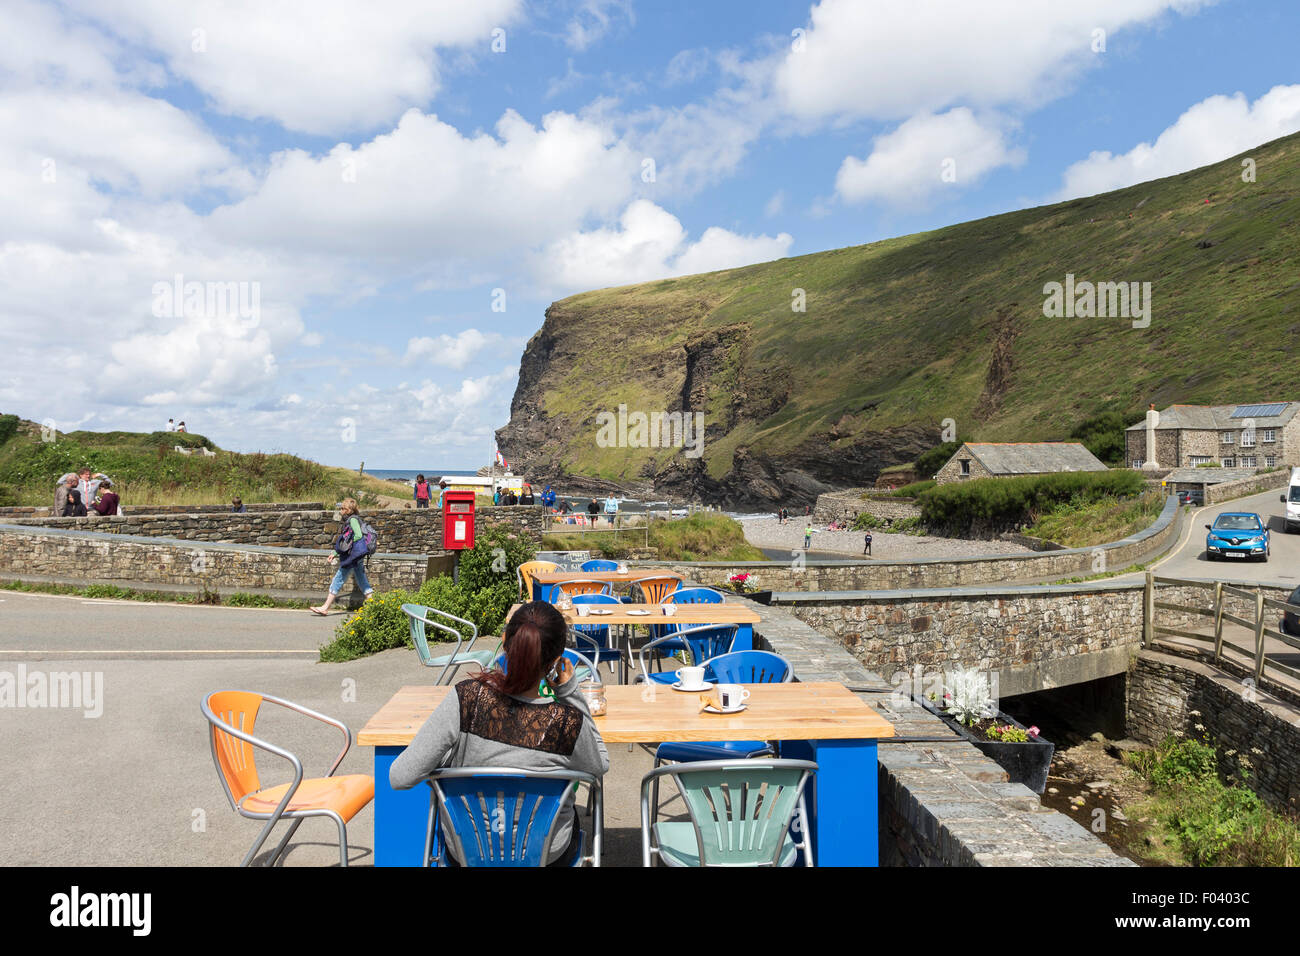 The Coastal Village of Crackington Haven in Summer, Cornwall UK - Stock Image